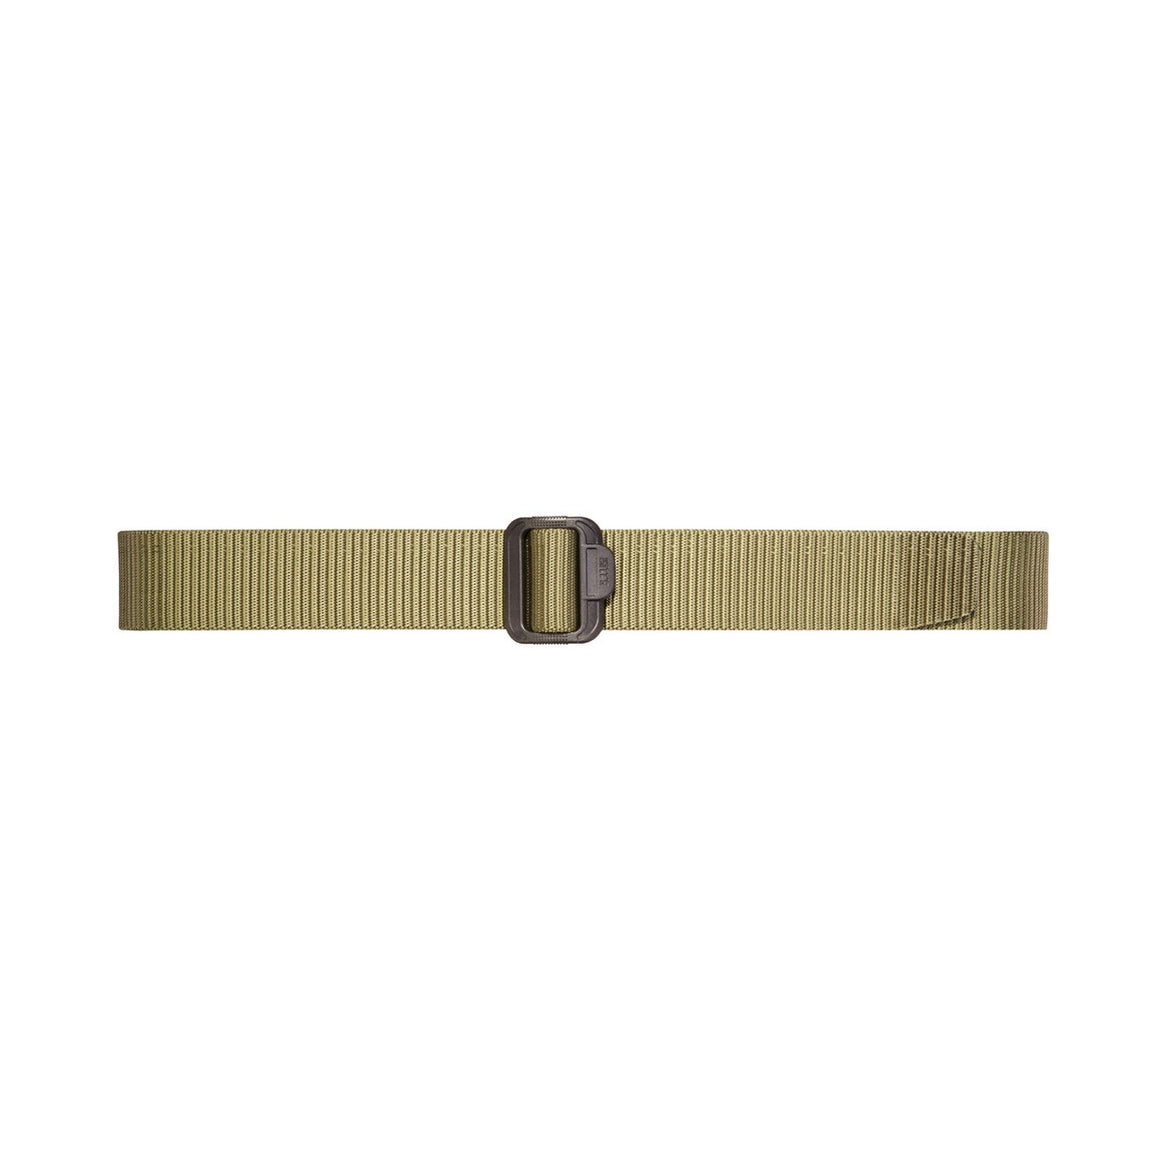 5.11 Tactical Double Duty TDU Belt 1-3/4